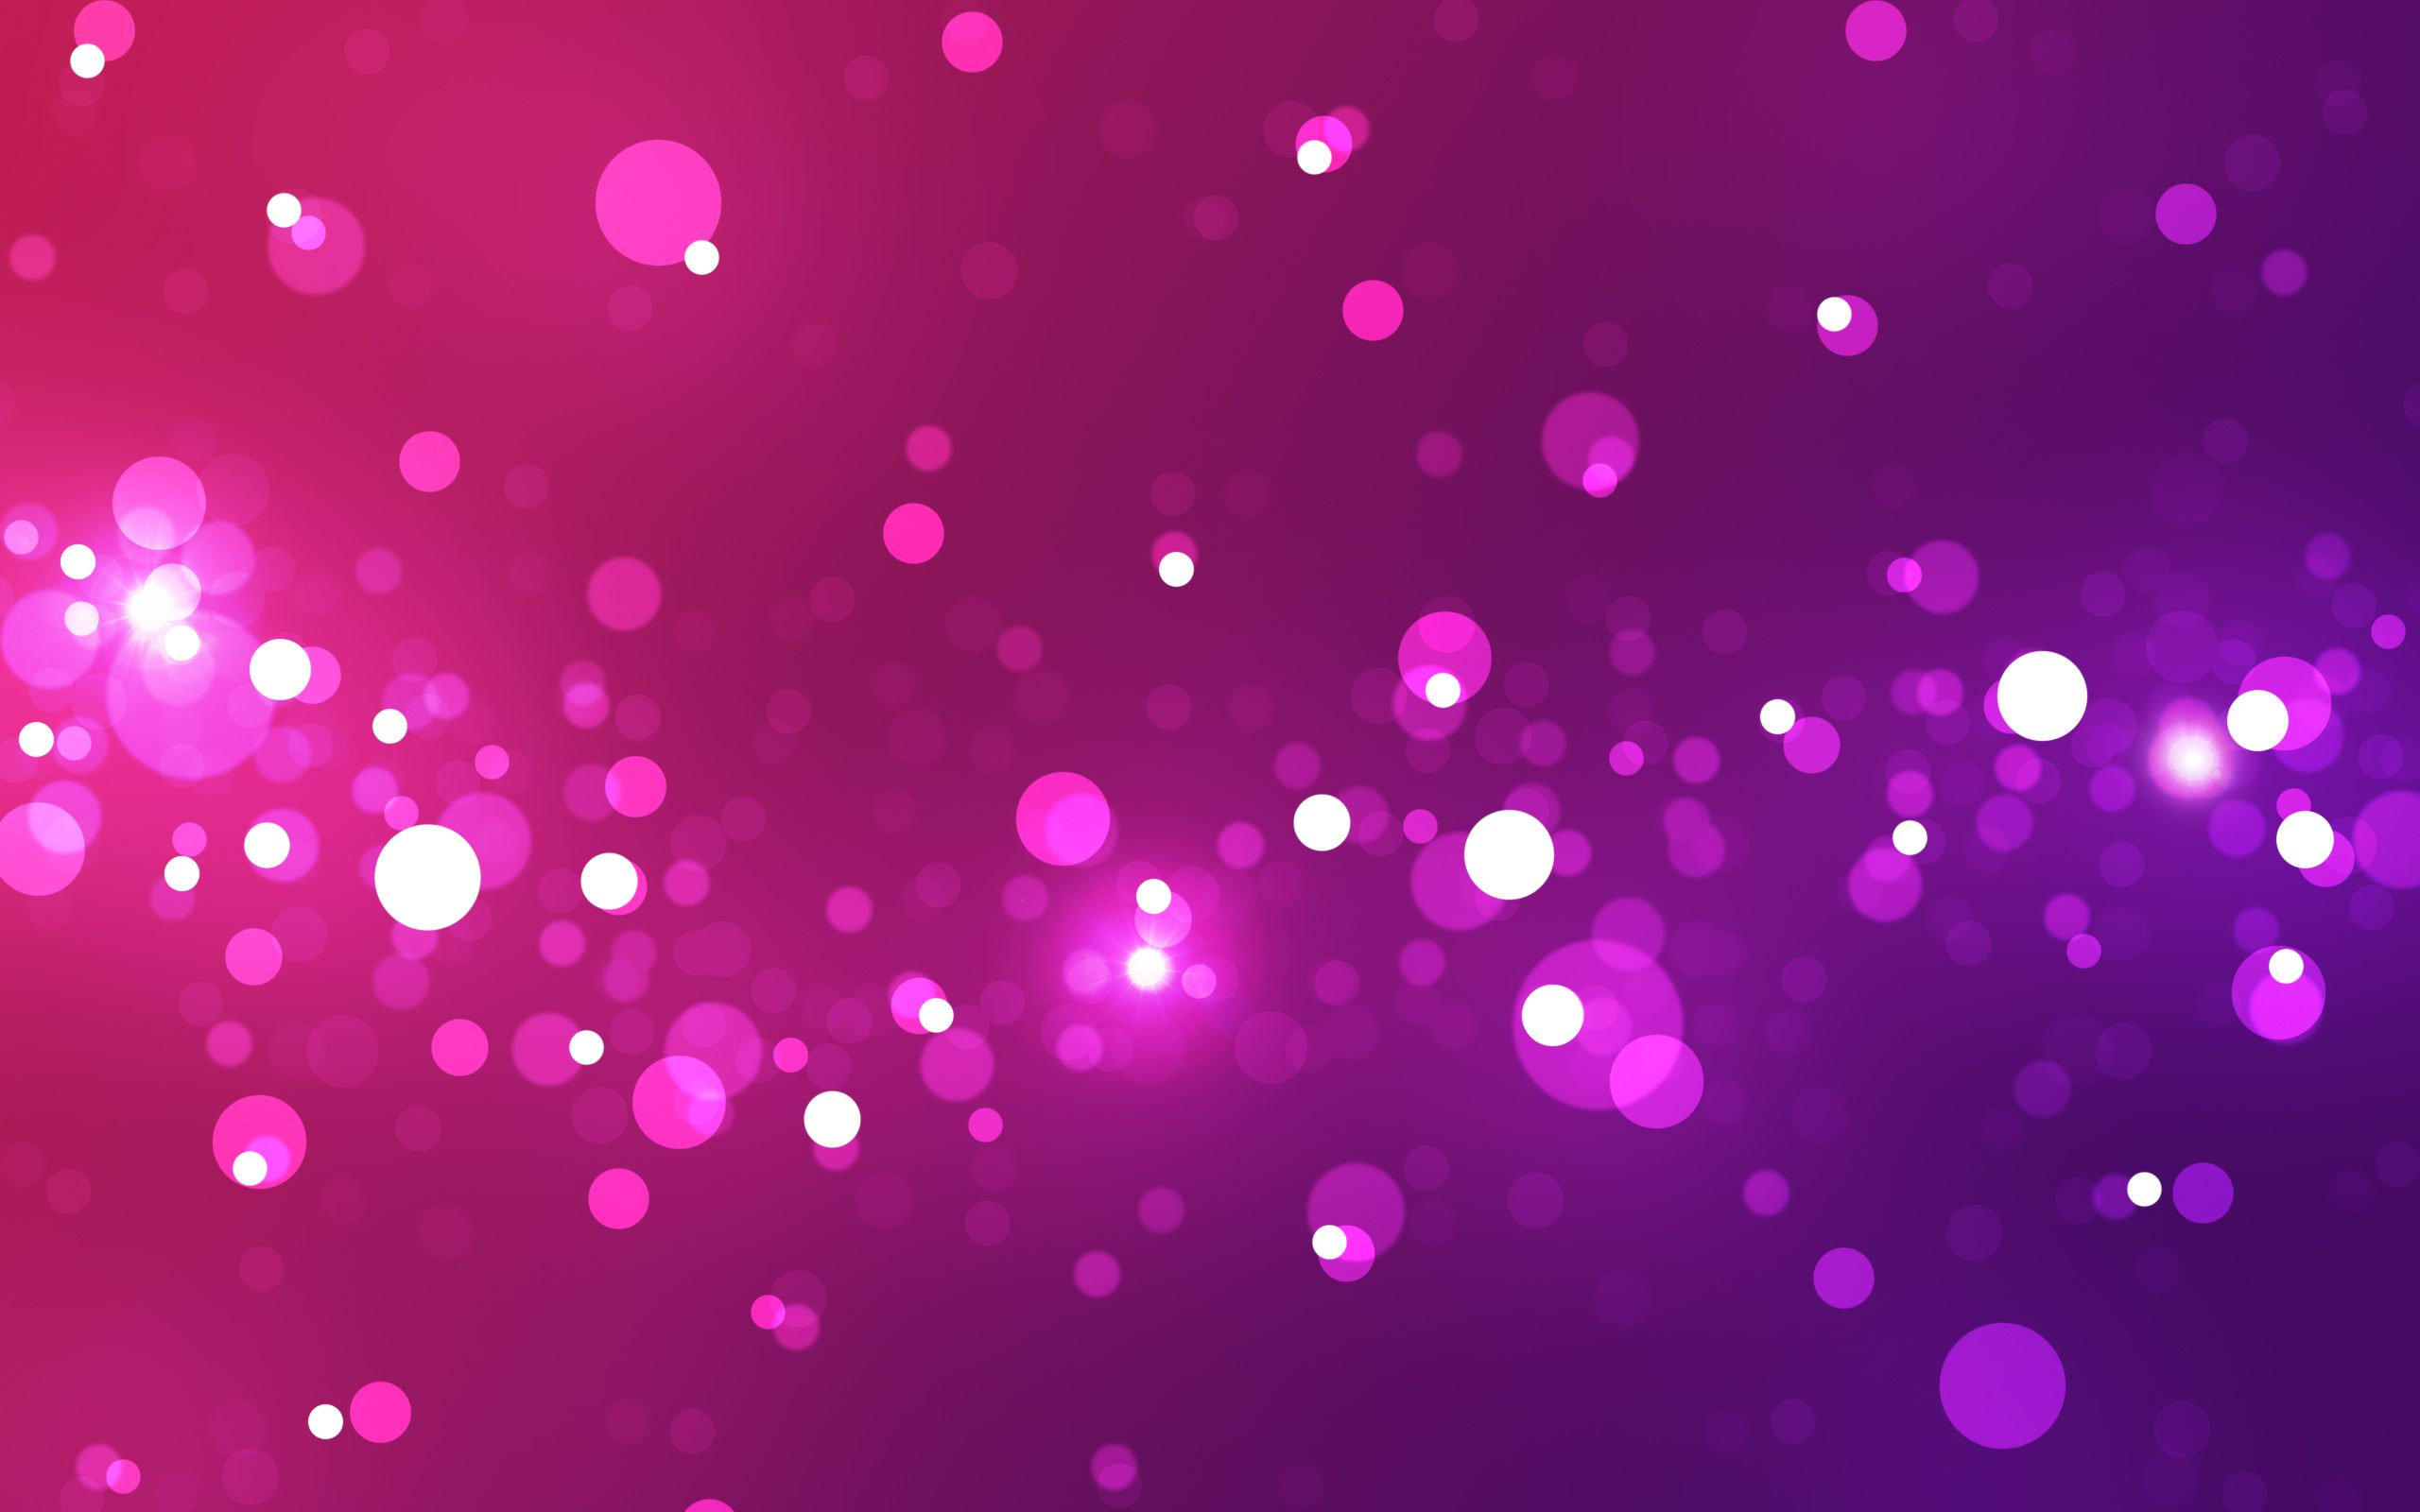 Cute Pink Glitter Wallpapers Pink Glitter Backgrounds Pixelstalk Net